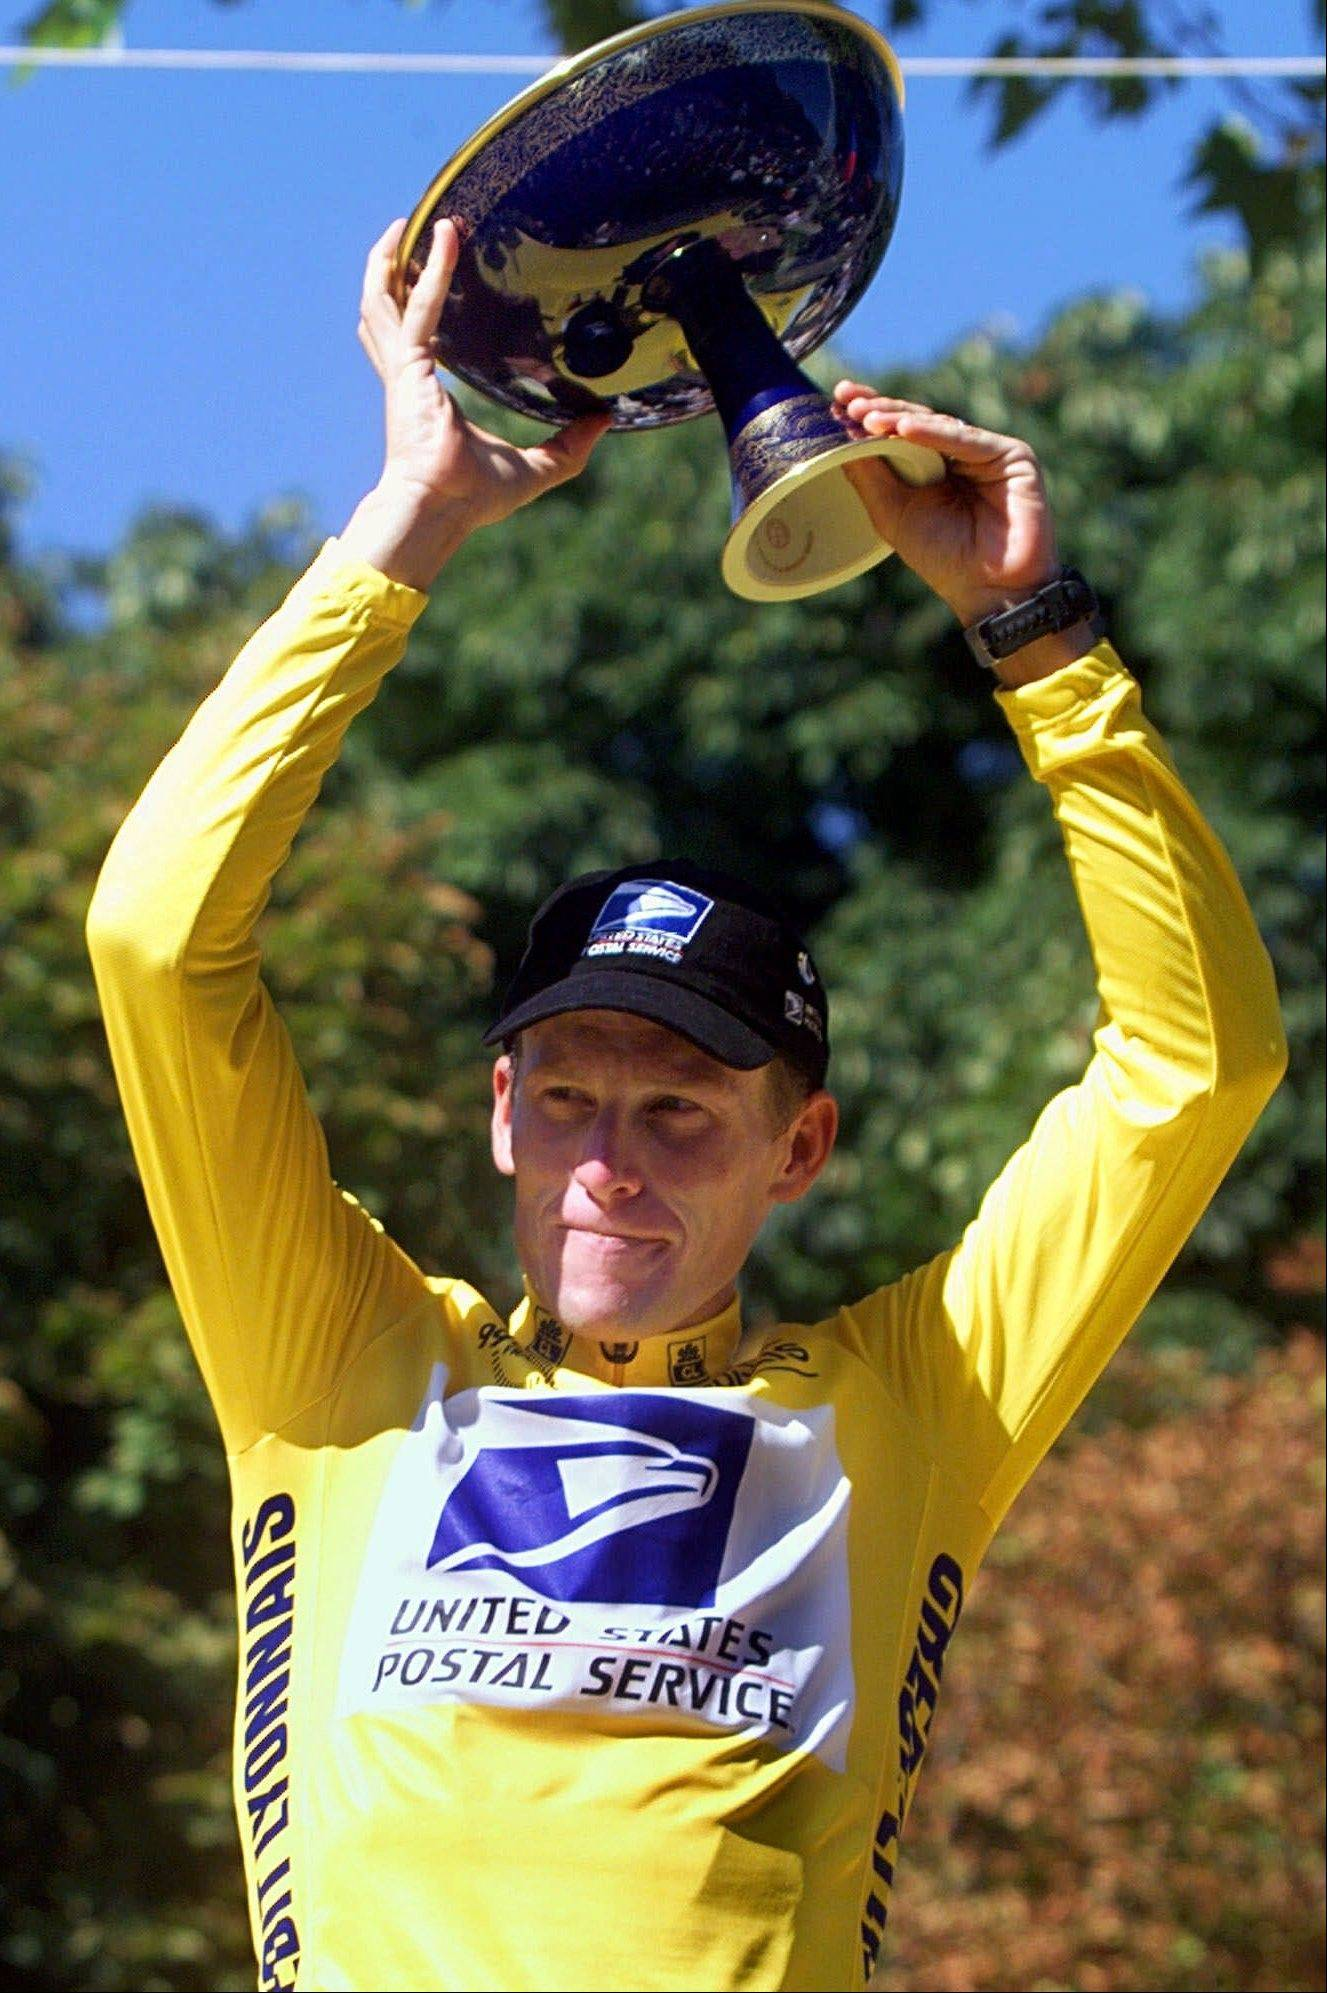 Lance Armstrong�s 1999 Tour de France win was the first of his seven tainted titles.